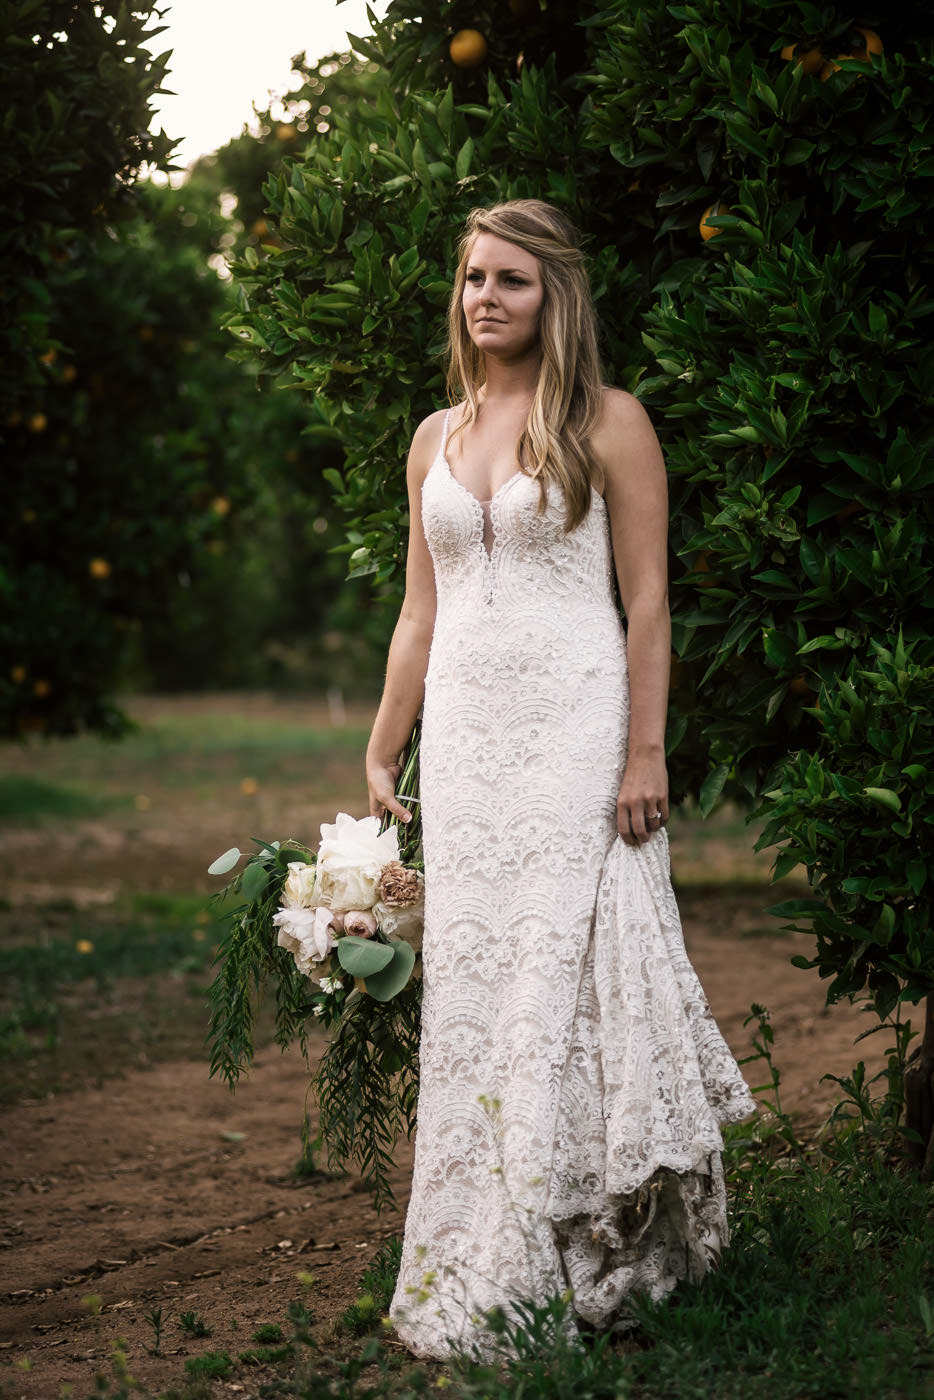 Stunning portrait of a bride among the orange trees of an orchard taken by the best Temecula wedding photographer.